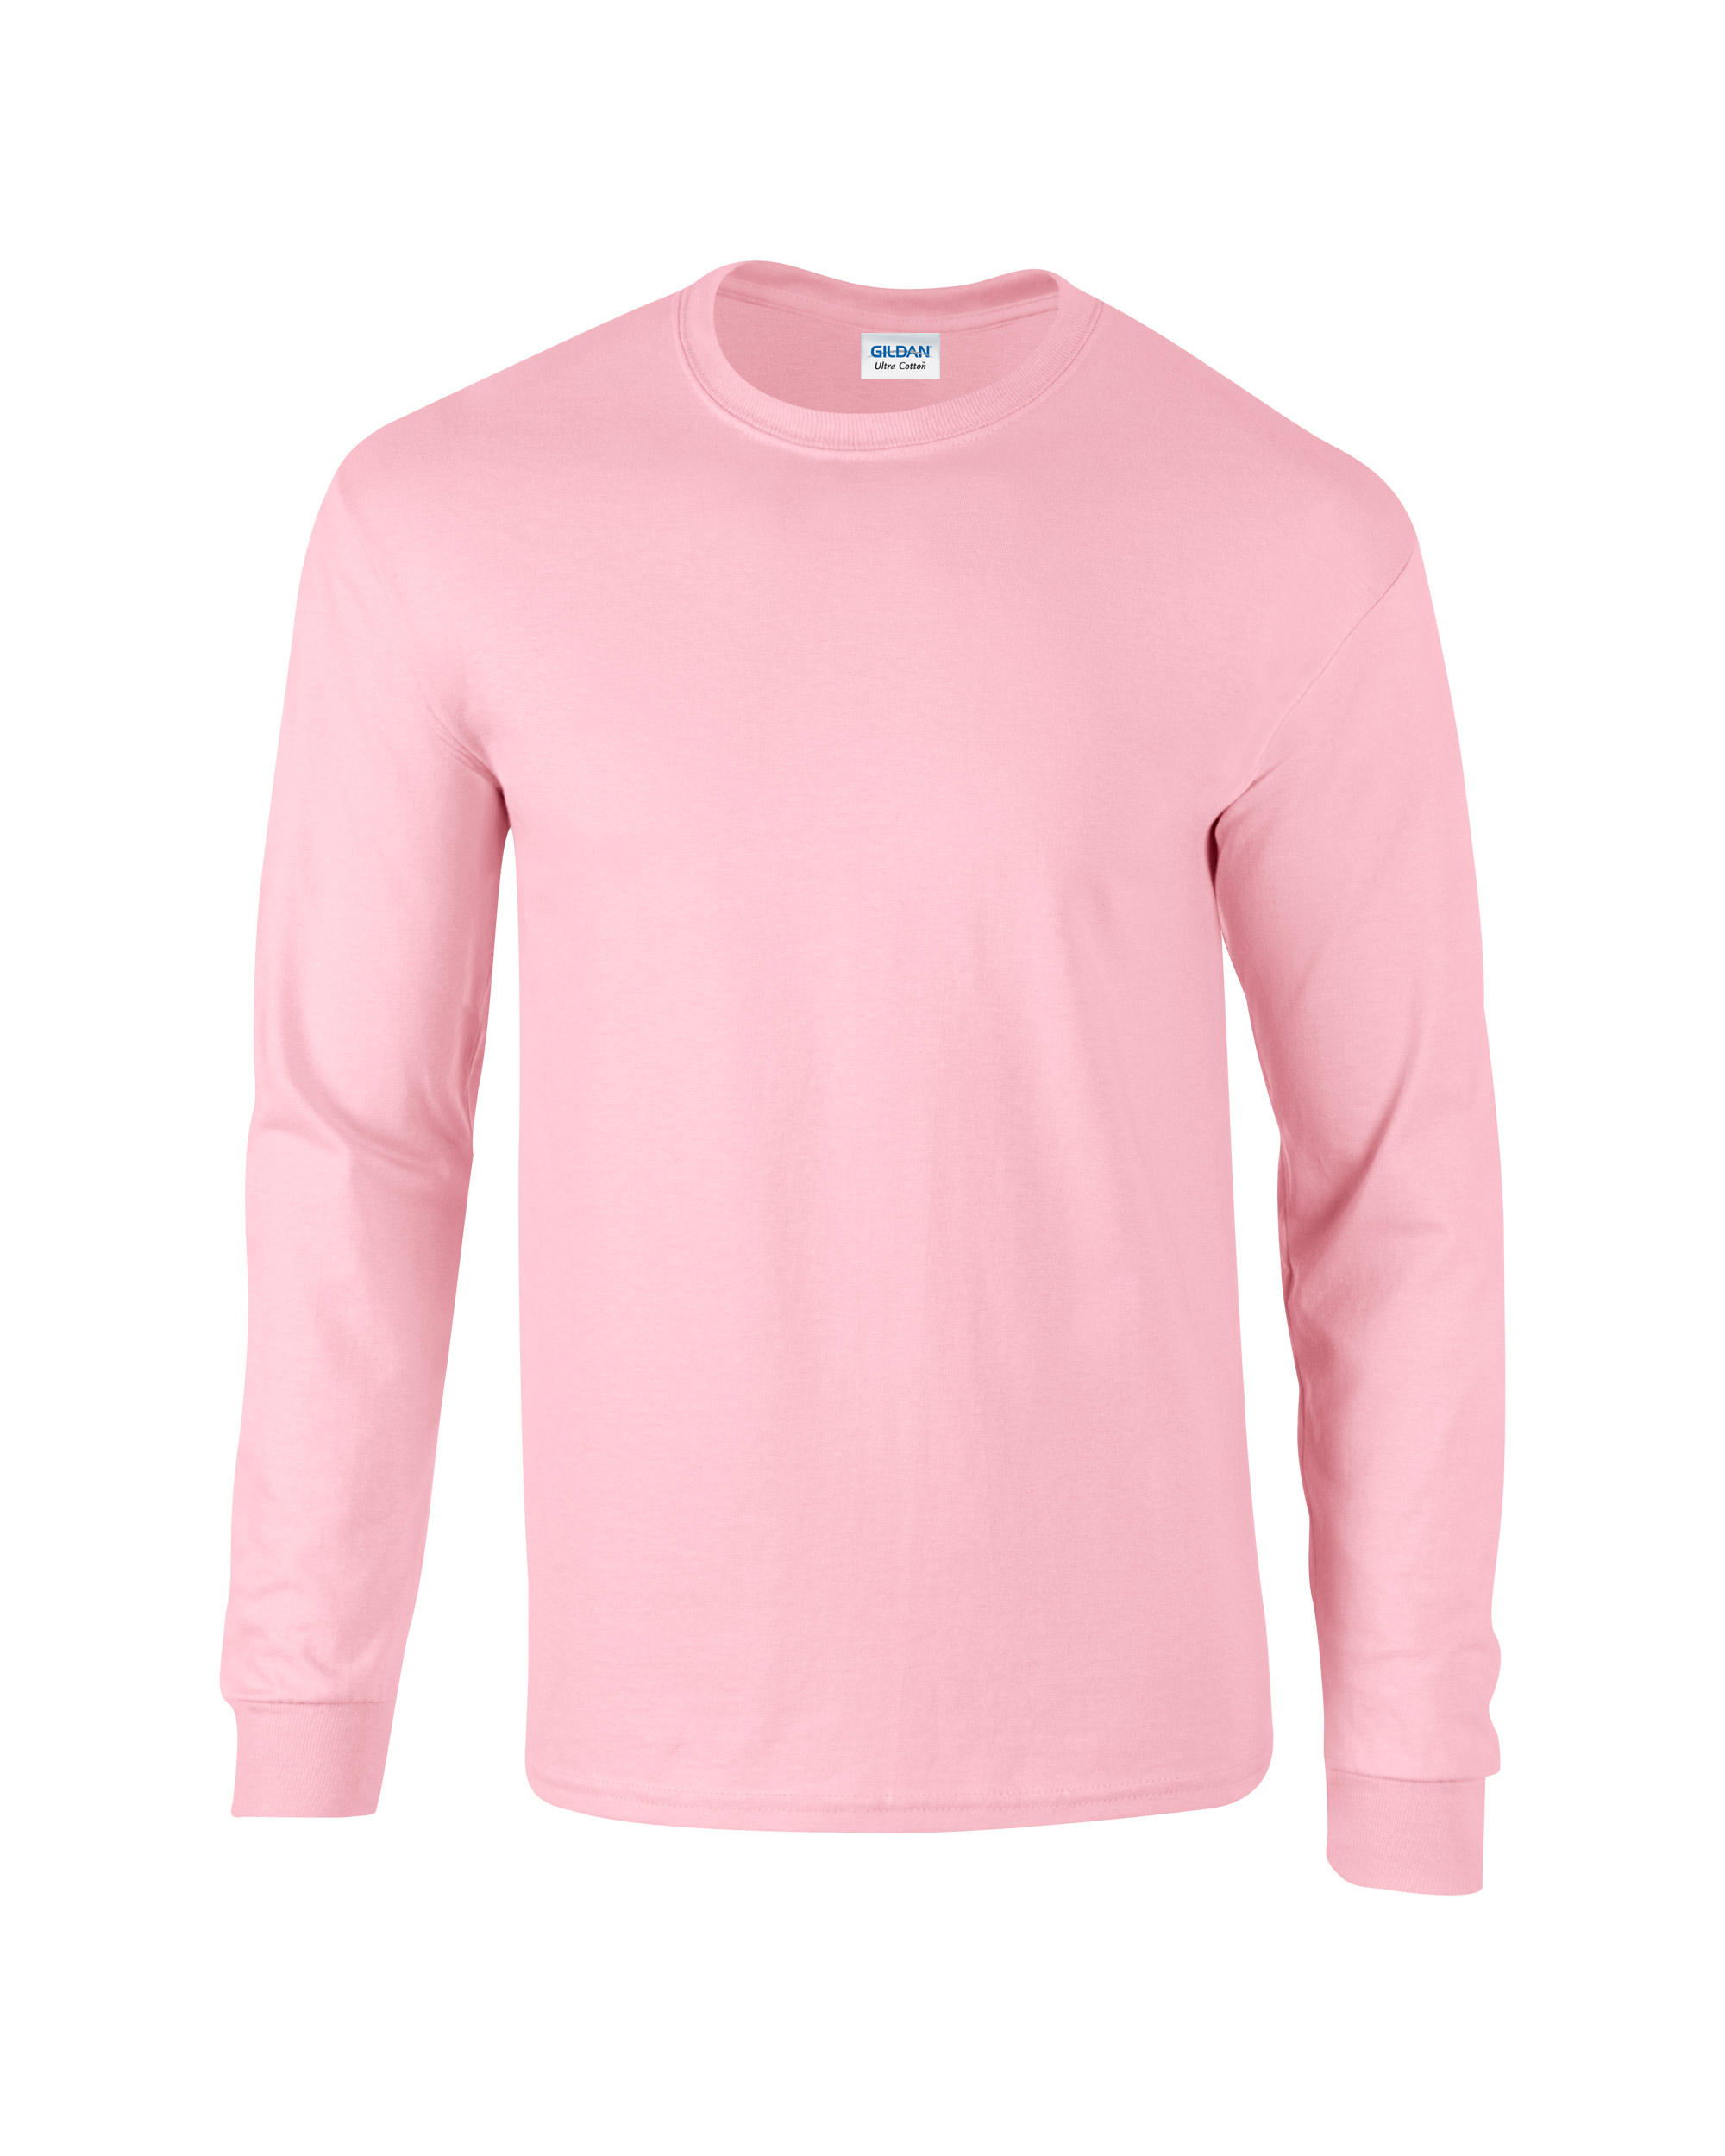 Gildan Adult Unisex Ultra Cotton Long Sleeve T-Shirt ...